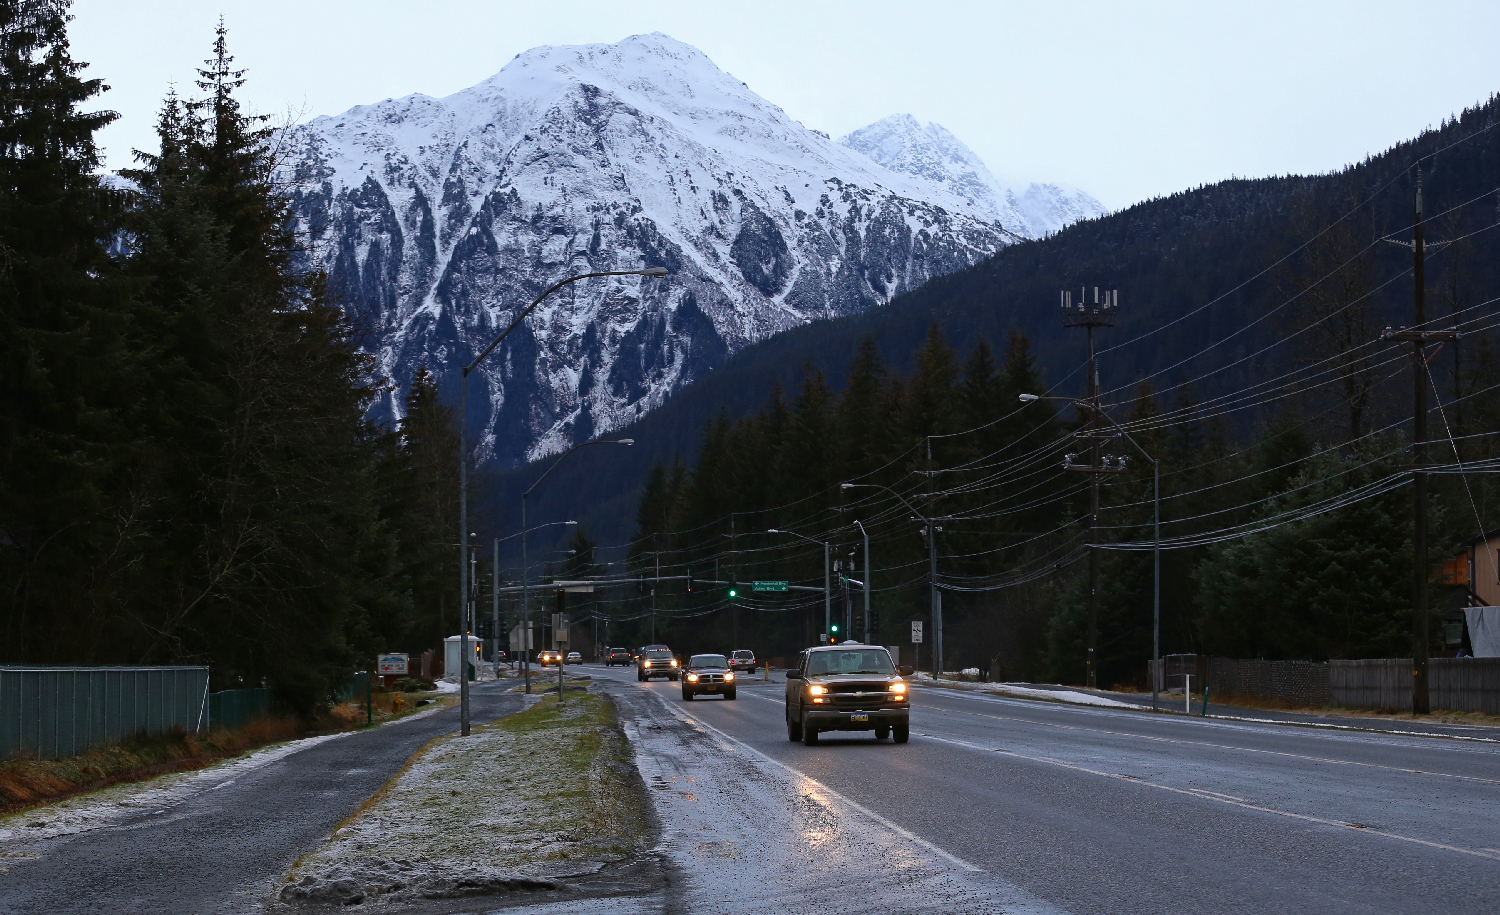 Loop Road in the Mendenhall Valley runs through residential areas. Mount Bullard in the background juts up to 4225 feet above sea level.